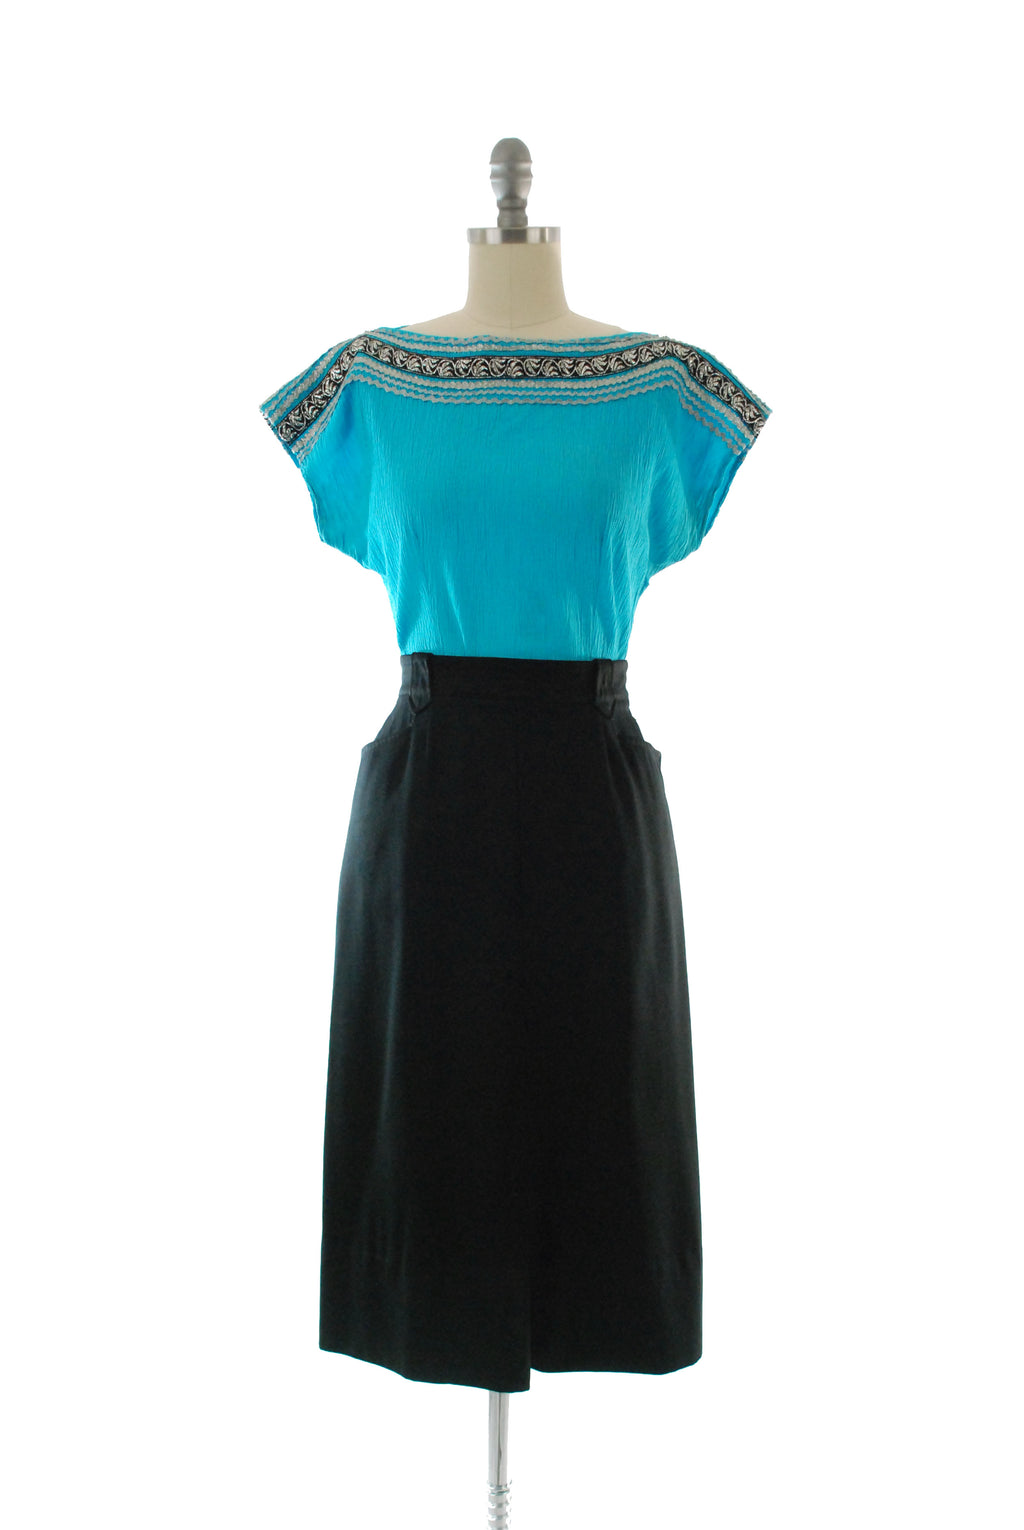 Chic 1950s Classic Black Gabardine Skirt with Western Keystone Belt Loops